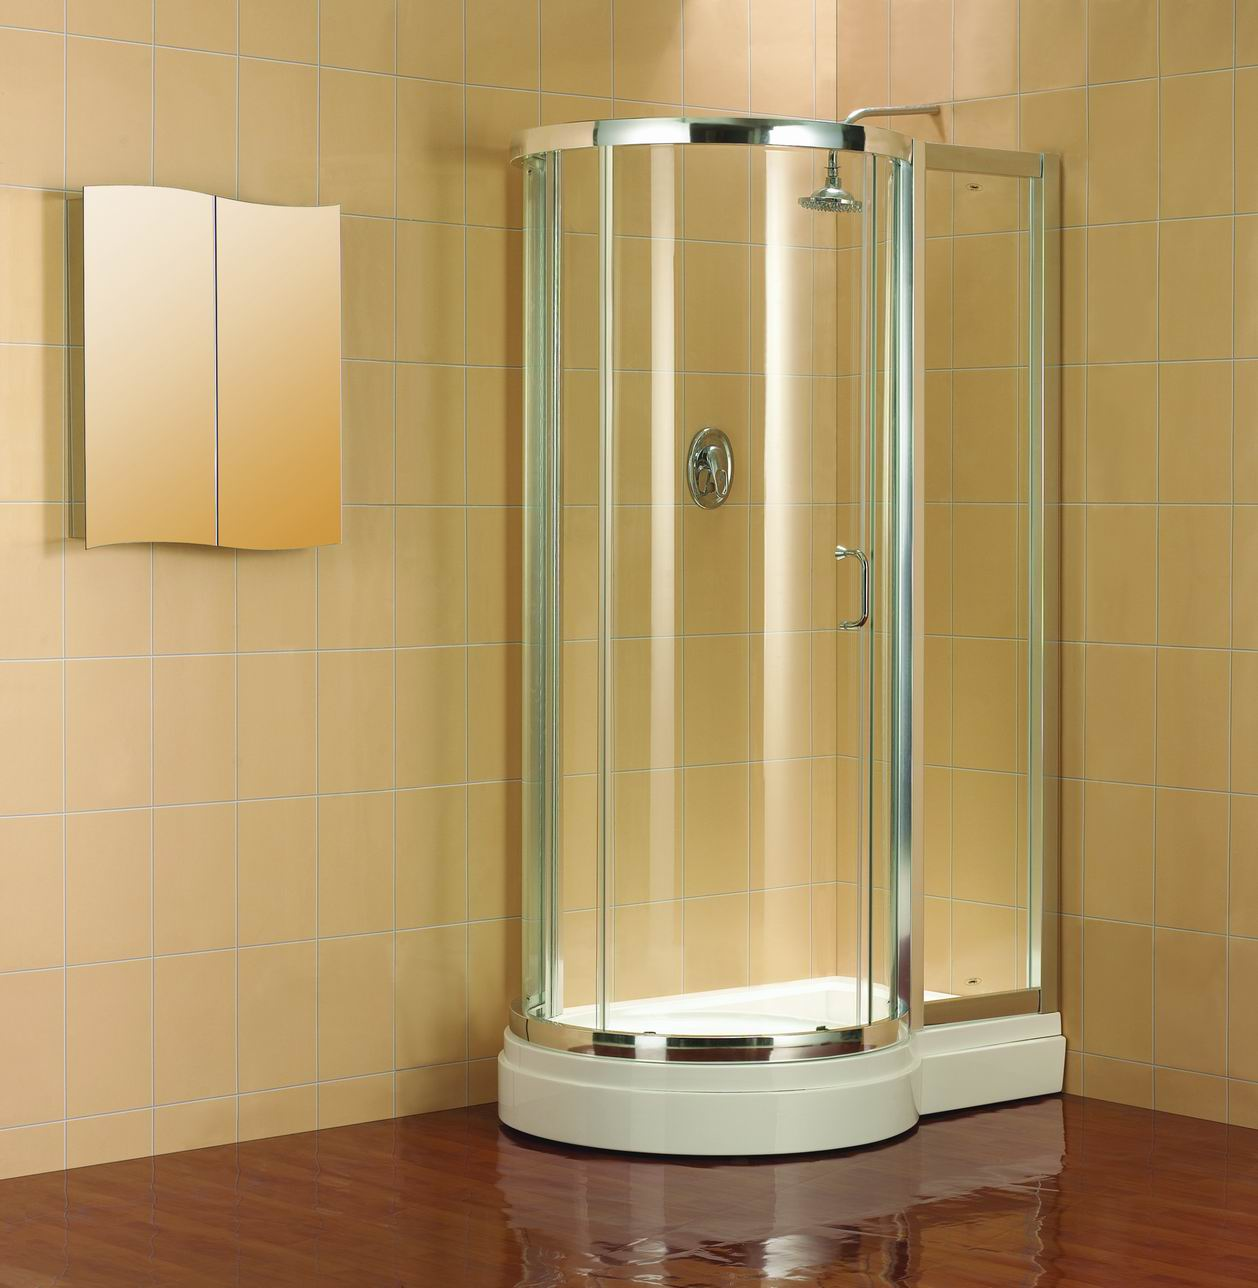 are quadrant shower enclosures the best choice for compact bathrooms